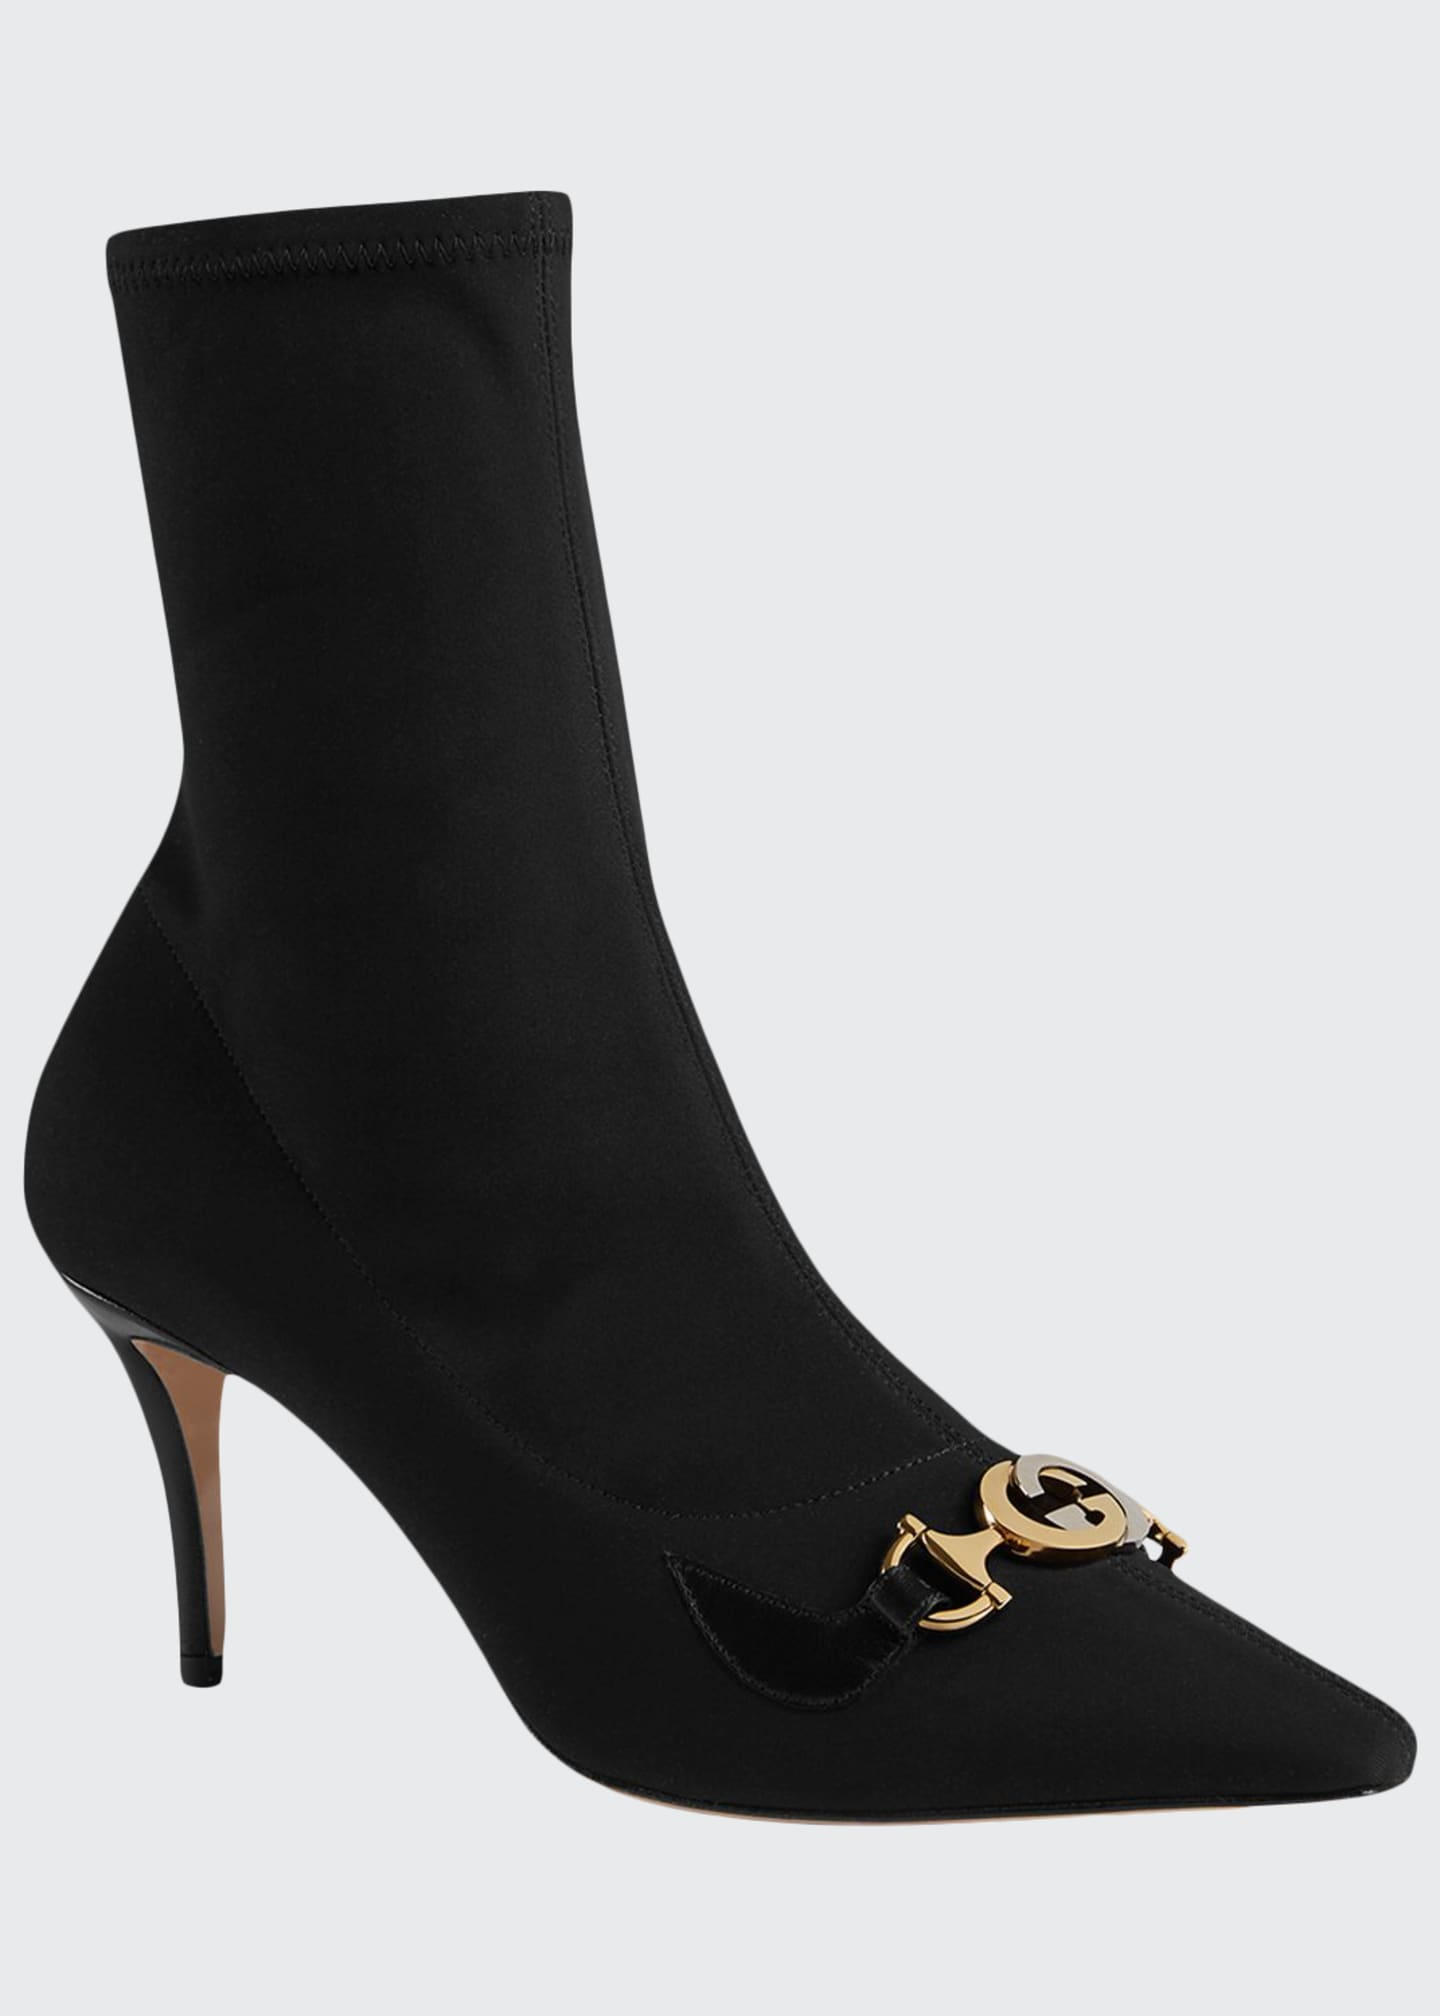 Gucci Zumi 75mm Stretch Booties